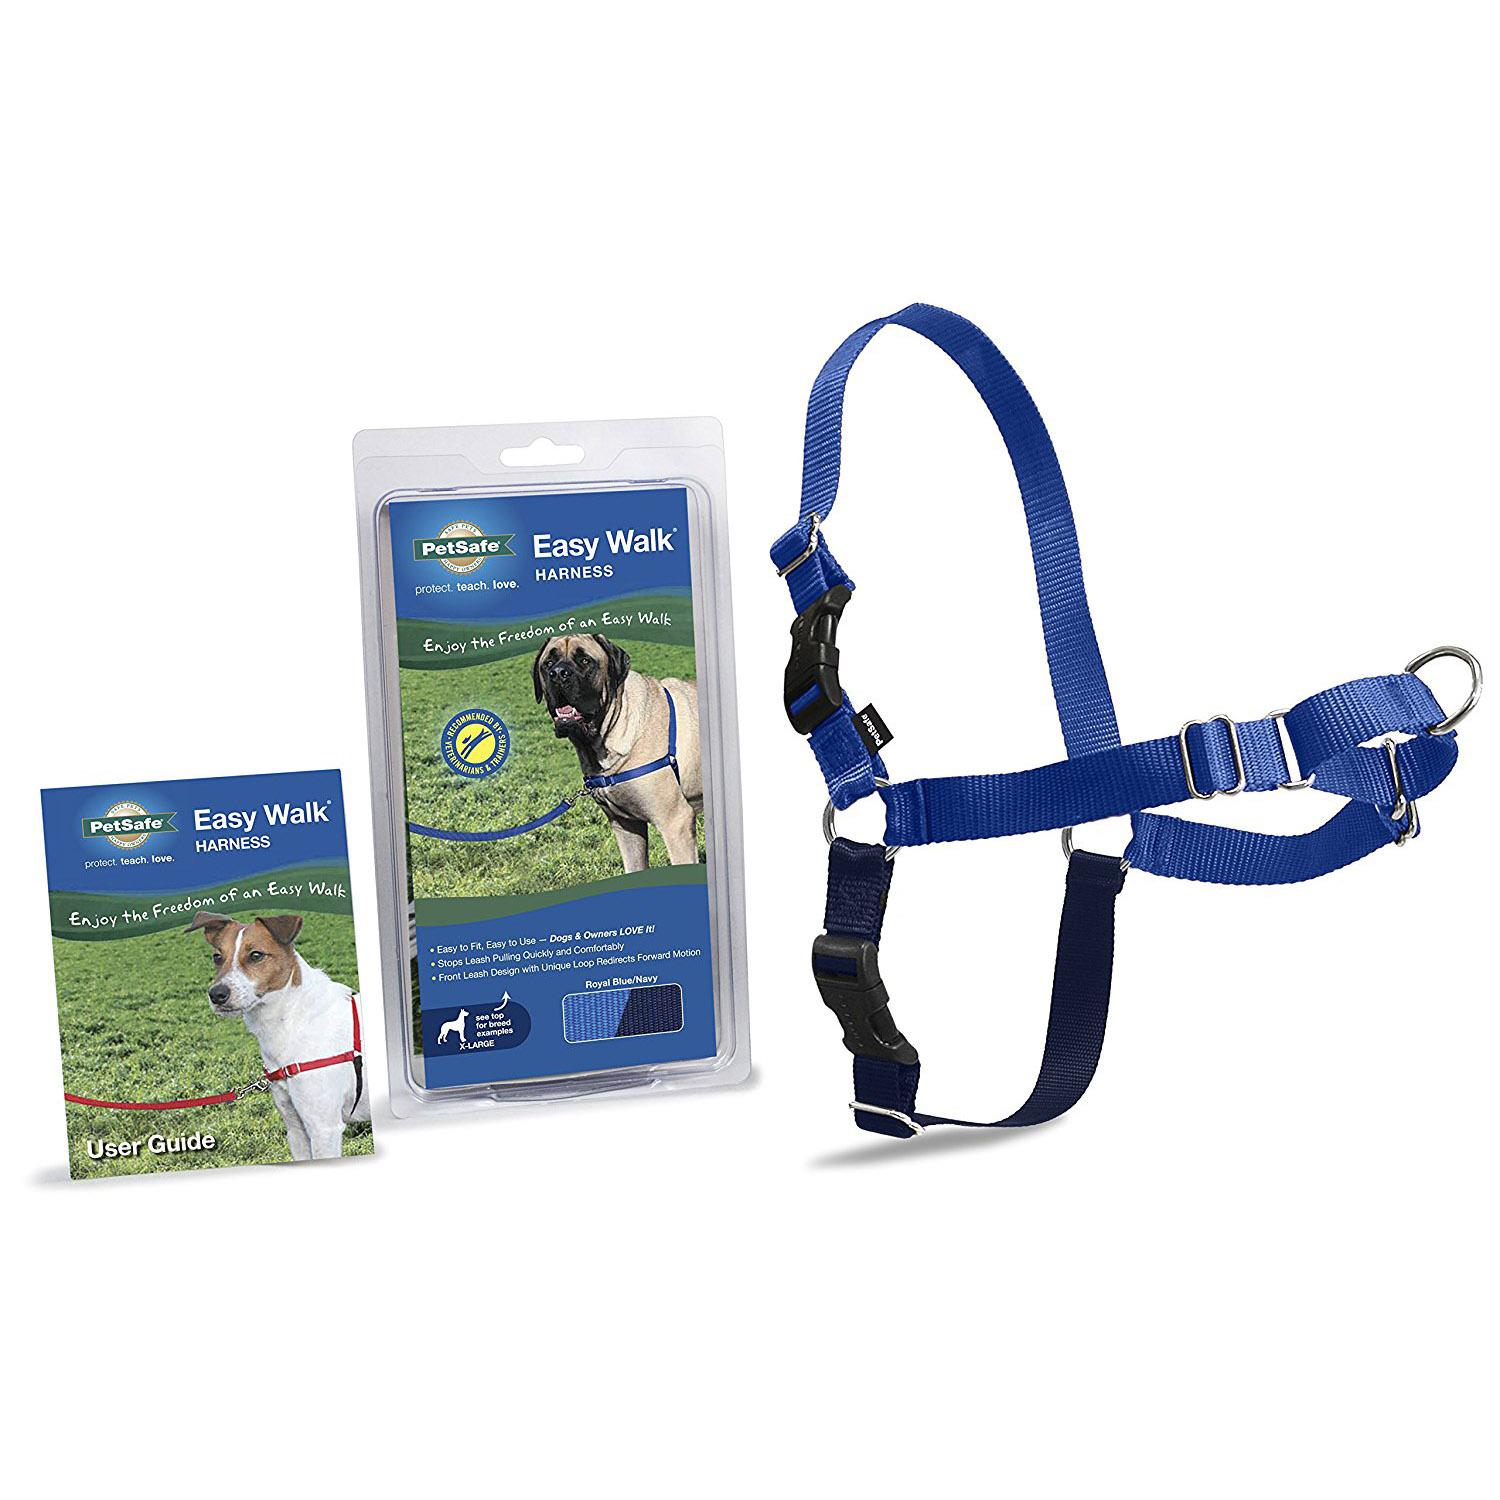 Easy Walk Nylon Harness by PetSafe - Royal Blue/Navy